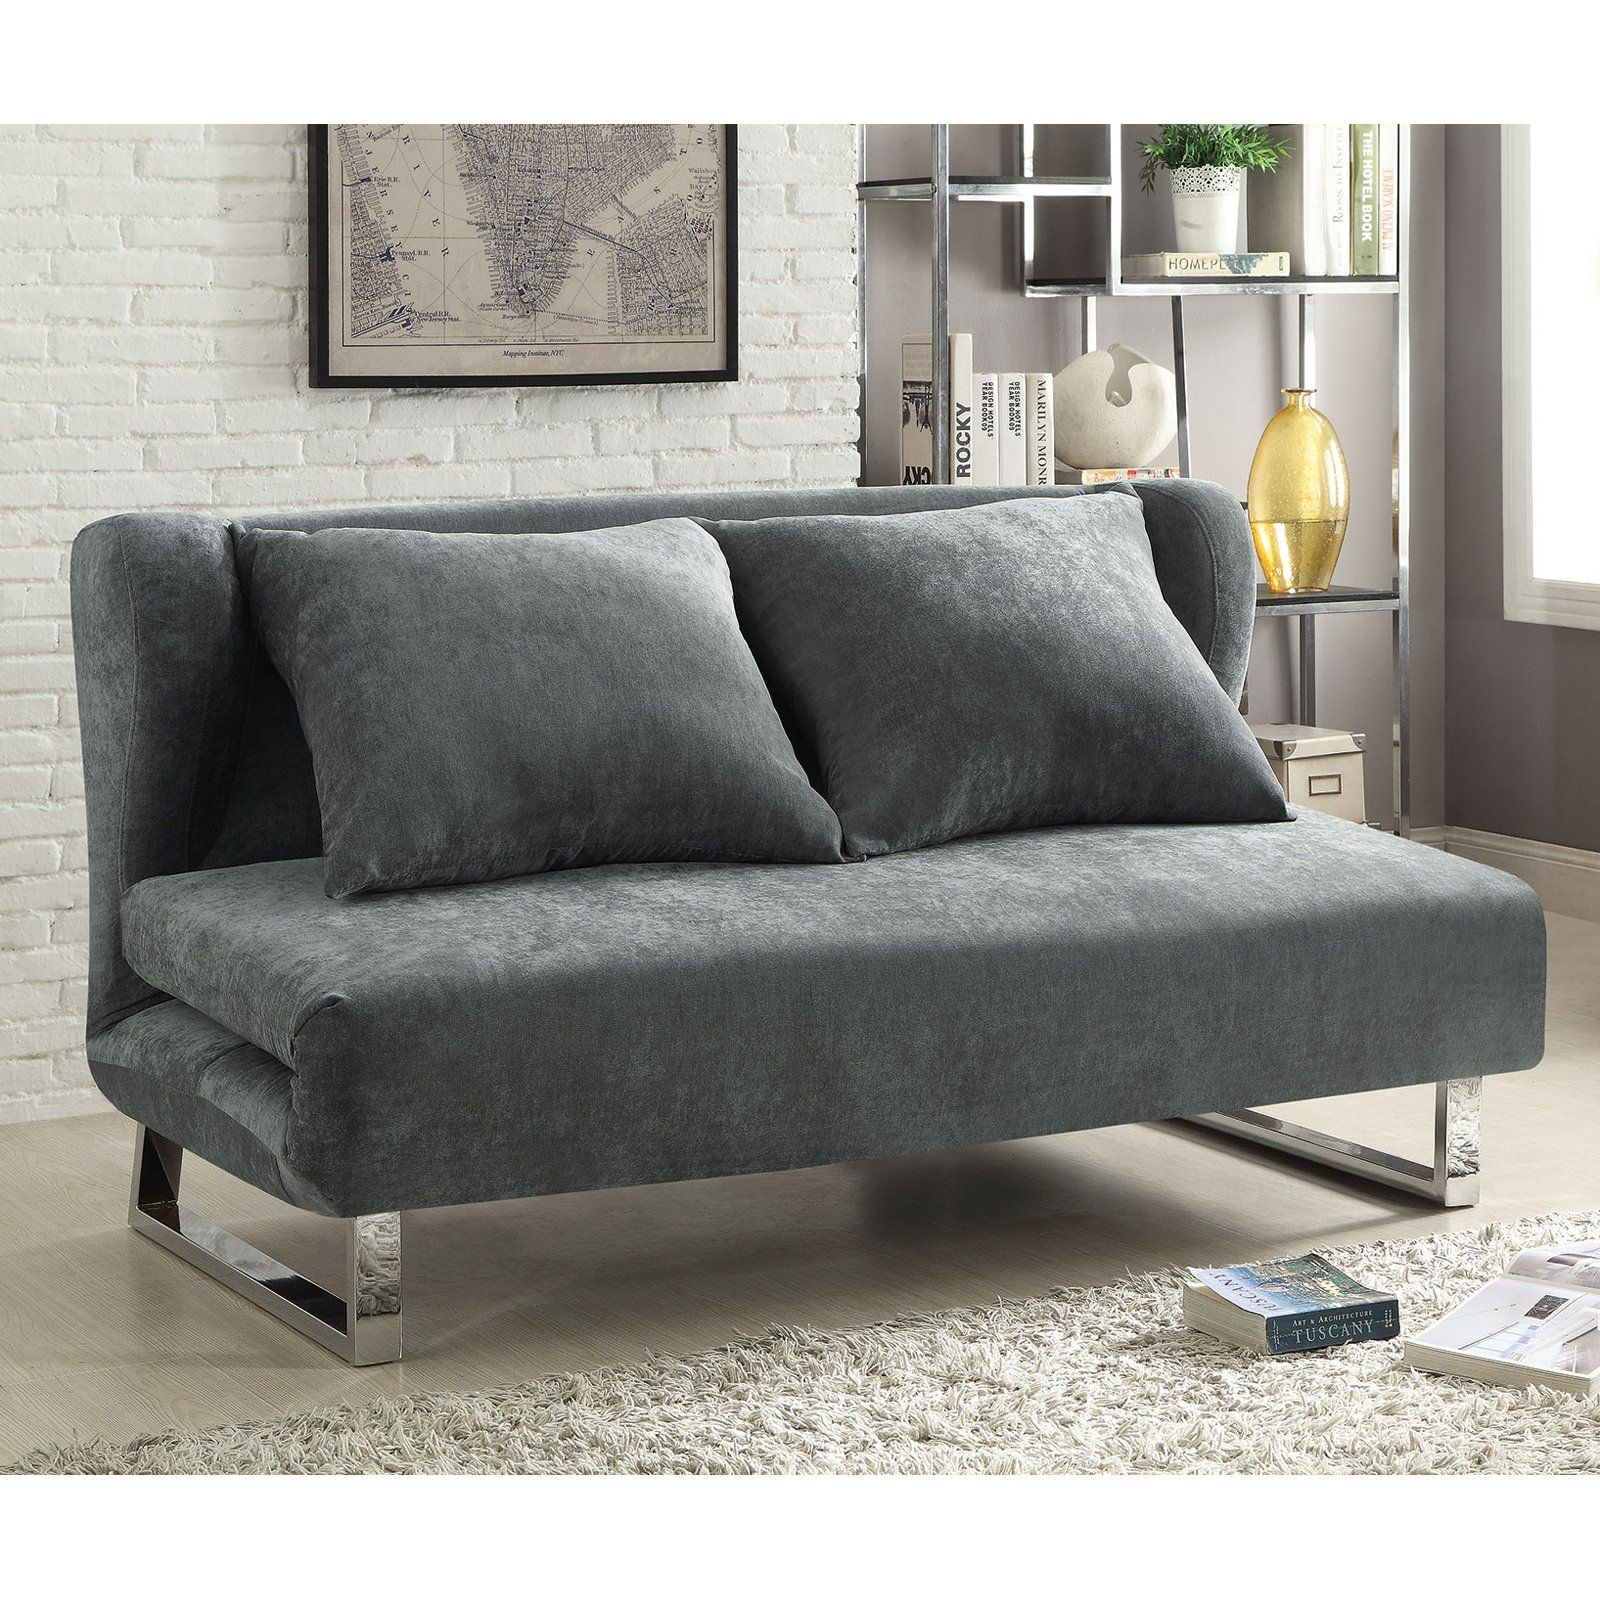 Coaster Kent Convertible Sofa Sofa Furniture Sofa Bed